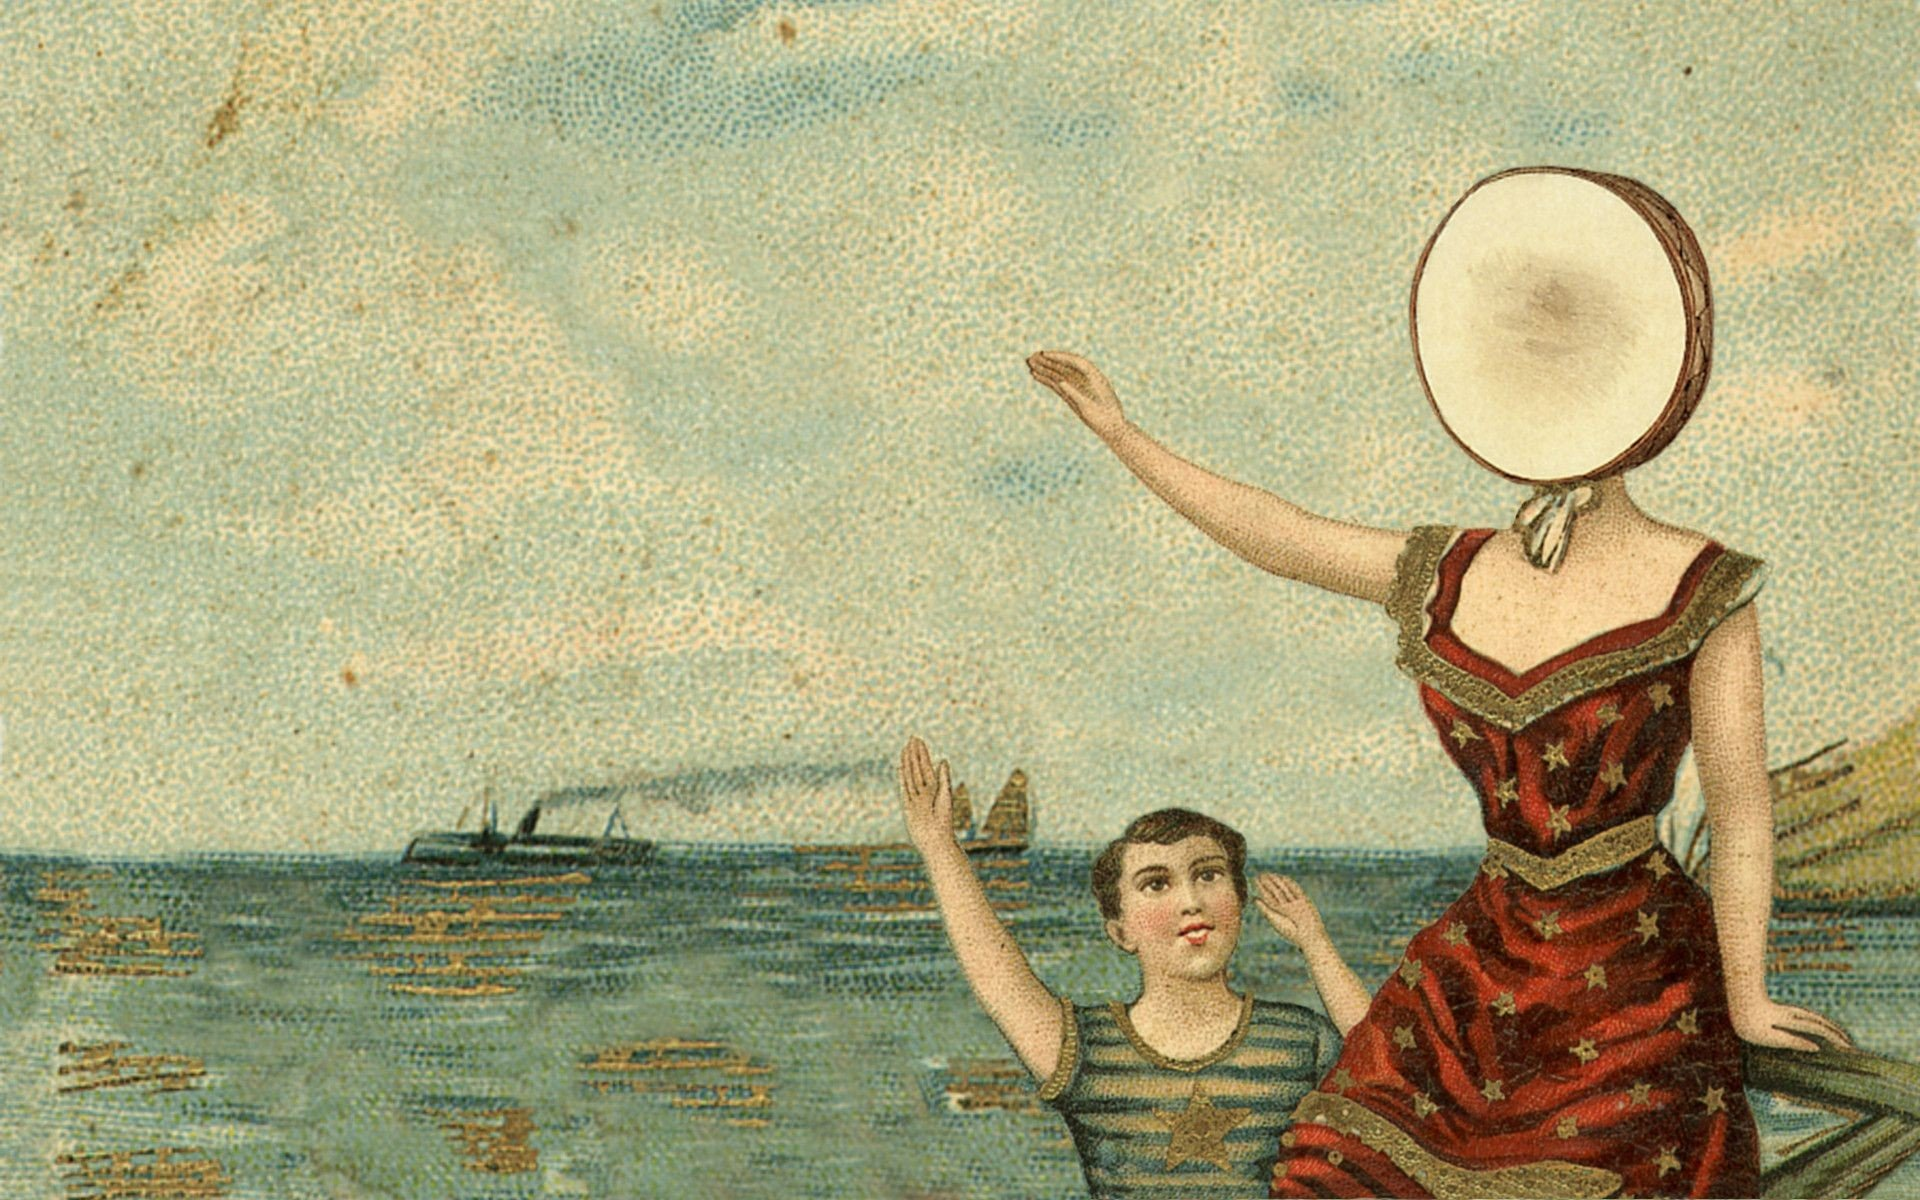 Neutral Milk Hotel, In the Aeroplane Over the Sea, Music, Album covers HD Wallpapers / Desktop ...